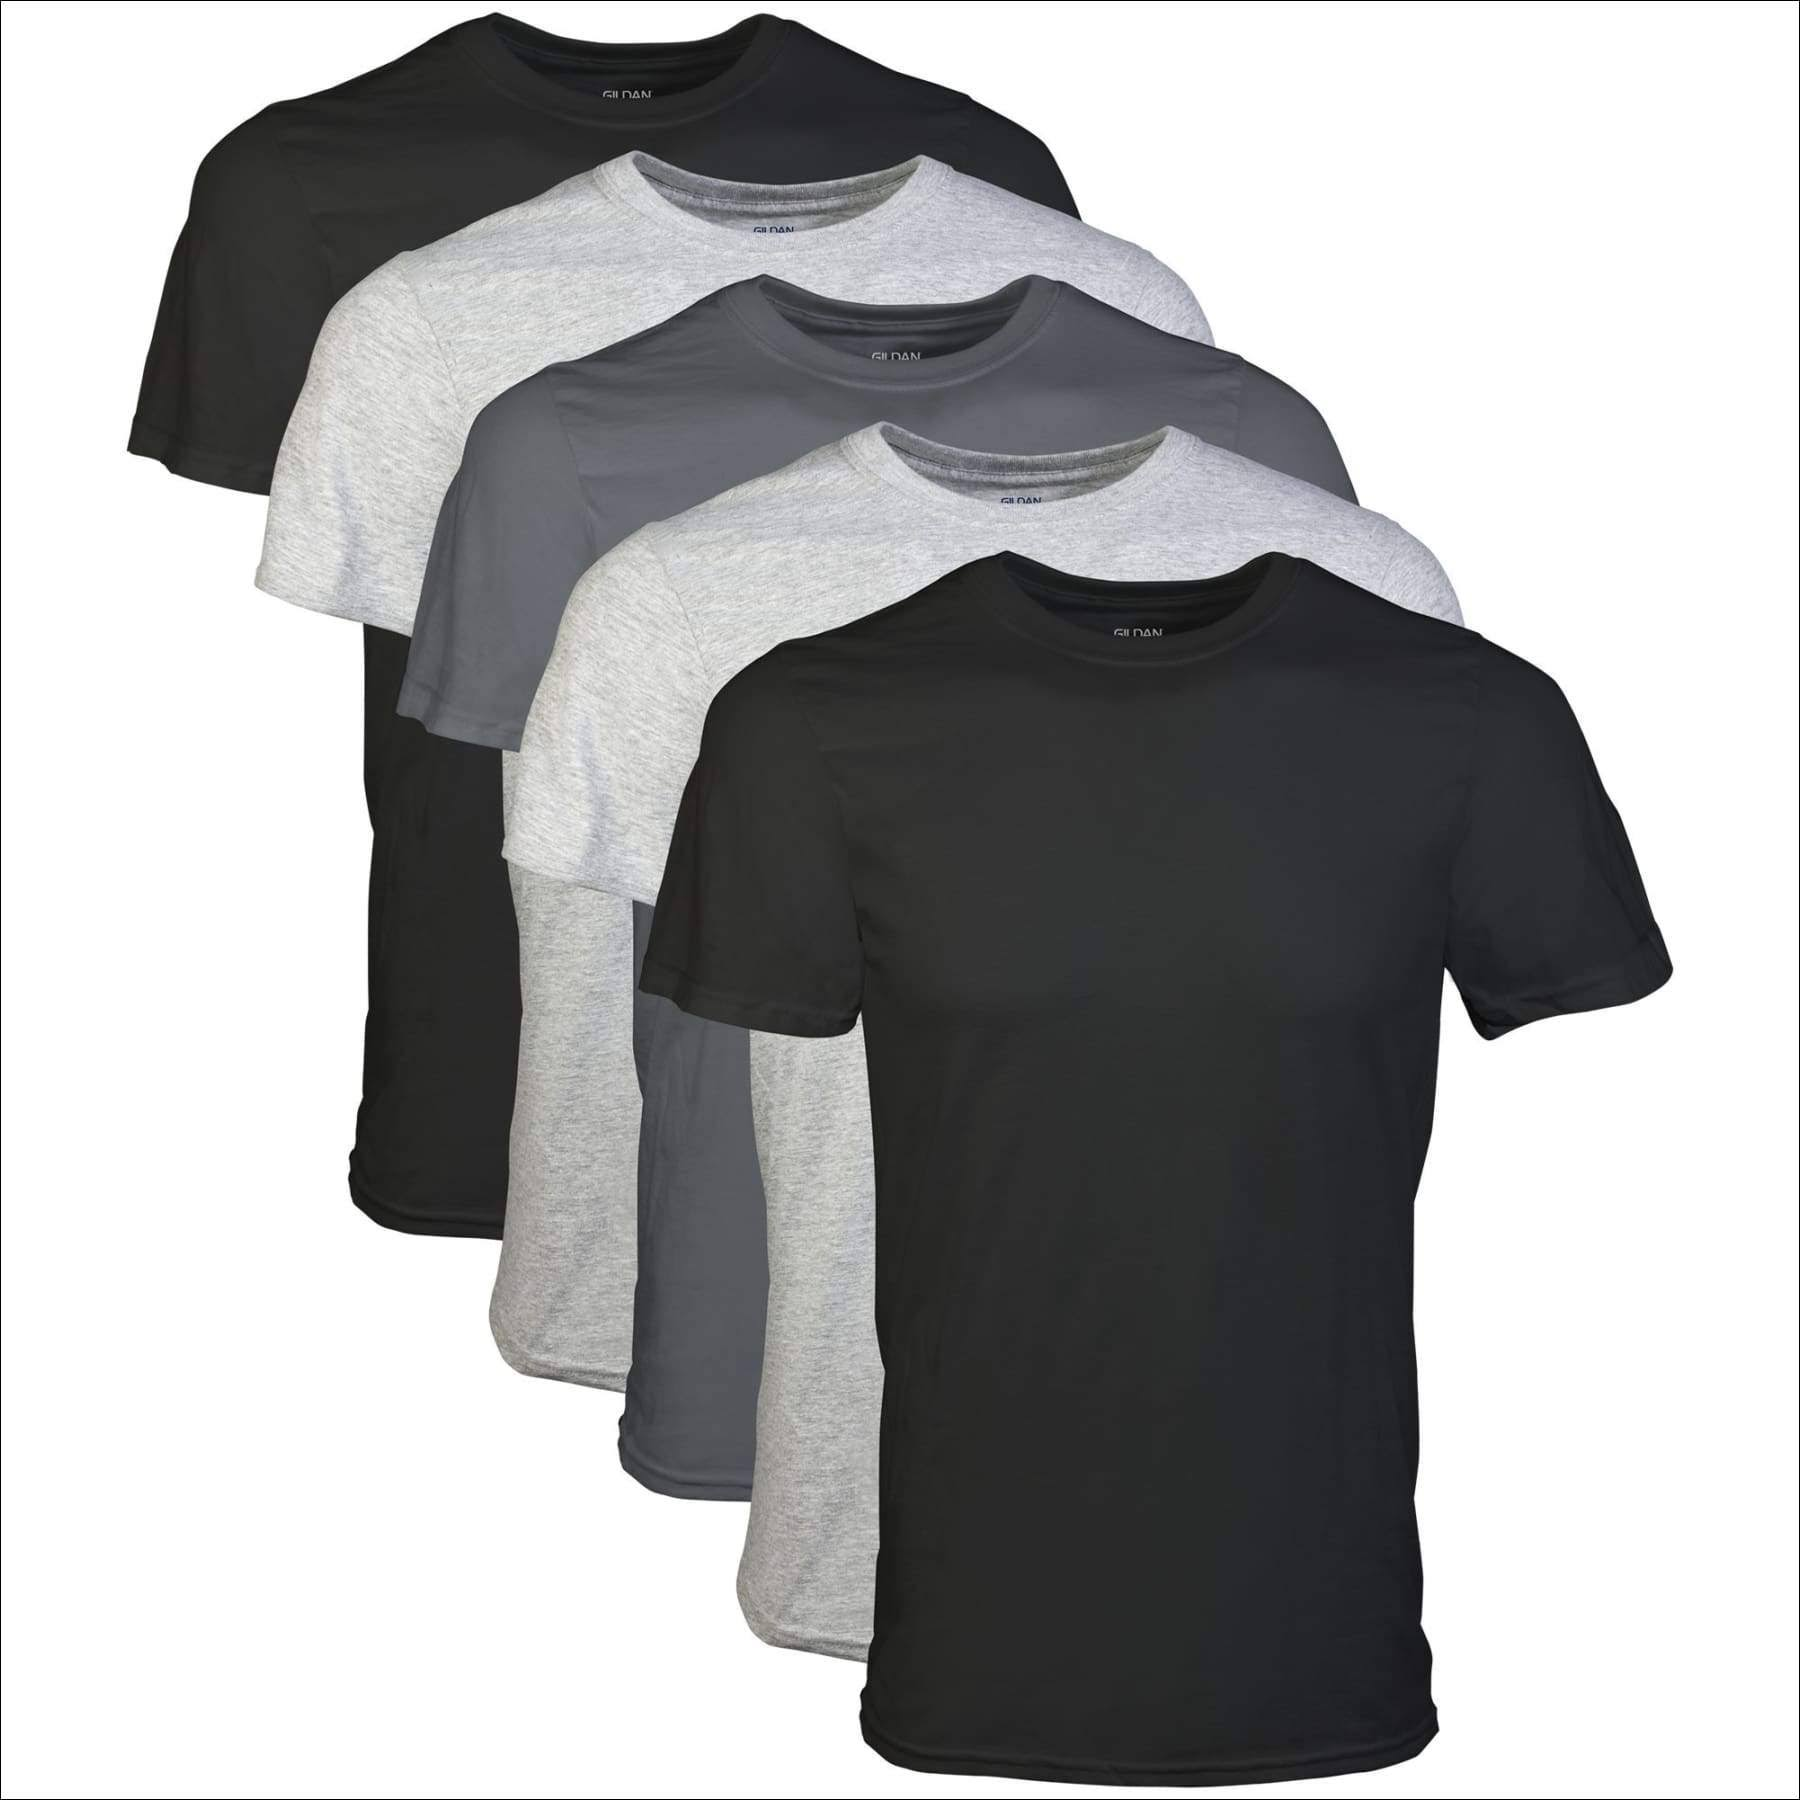 Gildan Men's Crew T-Shirt, Assorted, Medium - 5 count